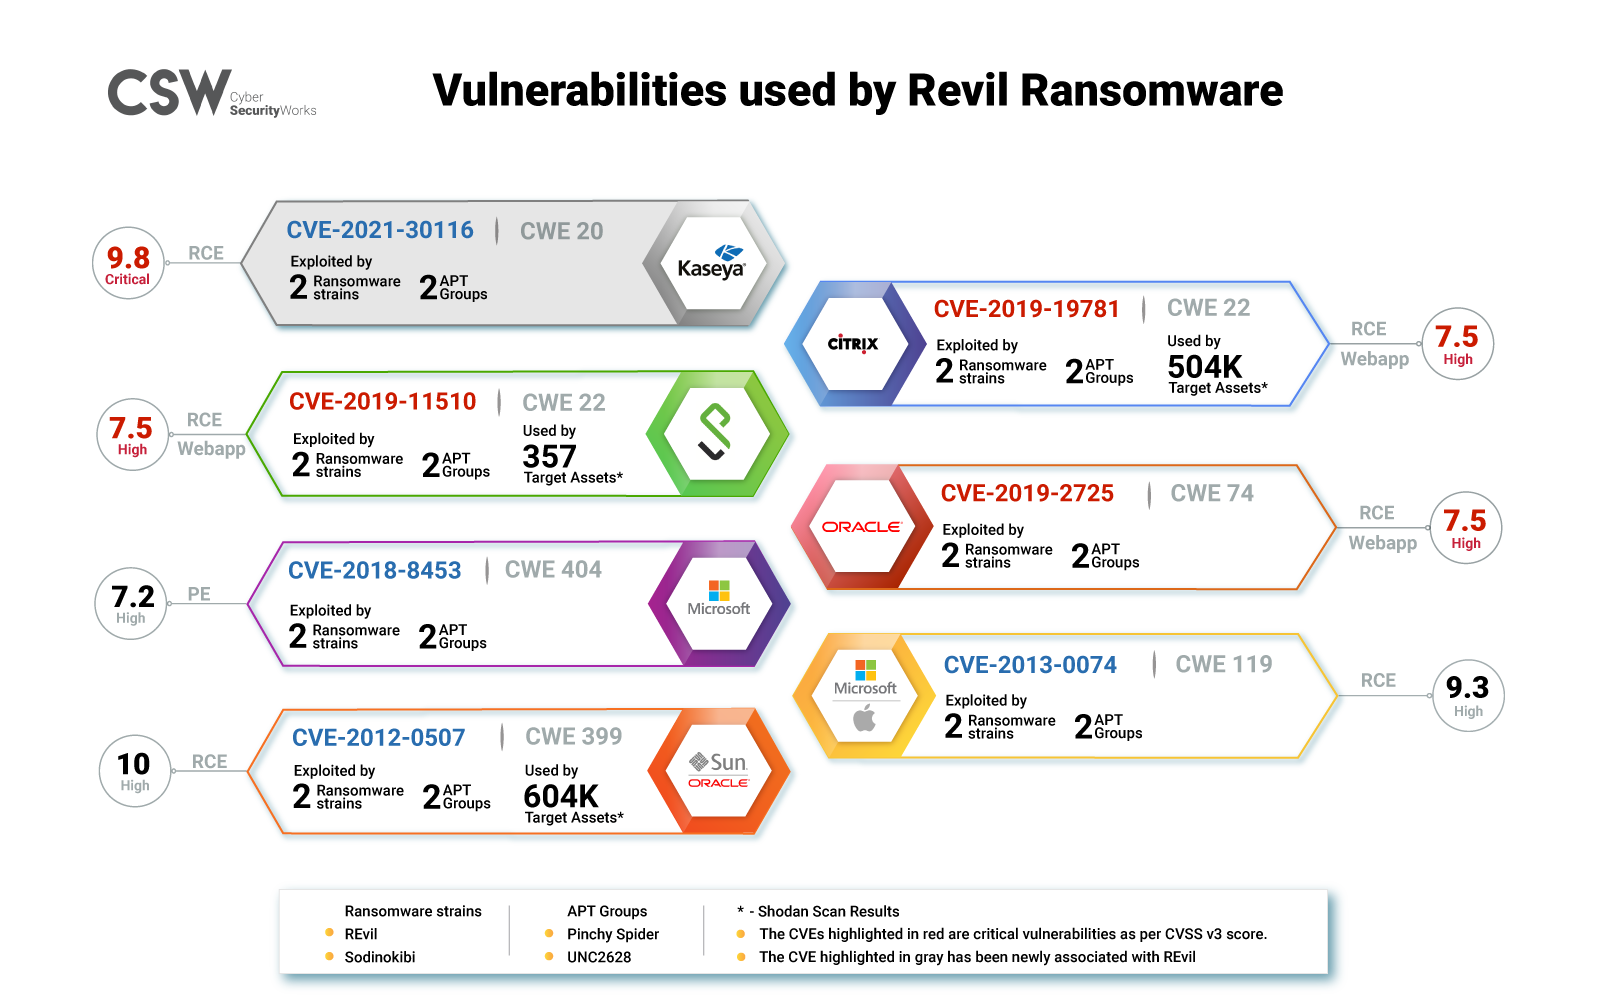 CVEs used by REvil Ransomware